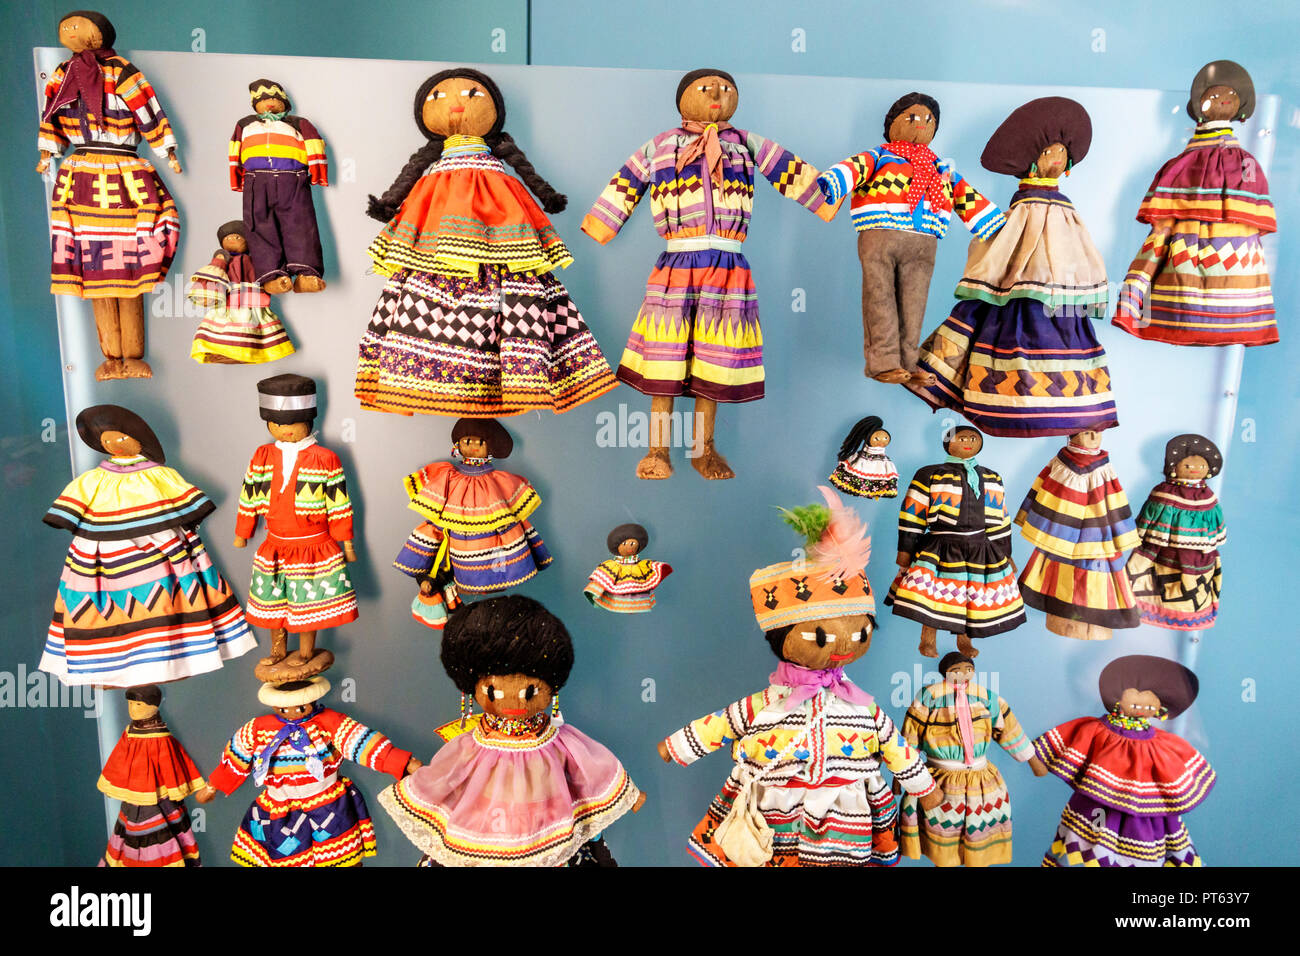 Tampa Florida Tampa Bay History Center centre inside collection exhibits Seminole dolls - Stock Image